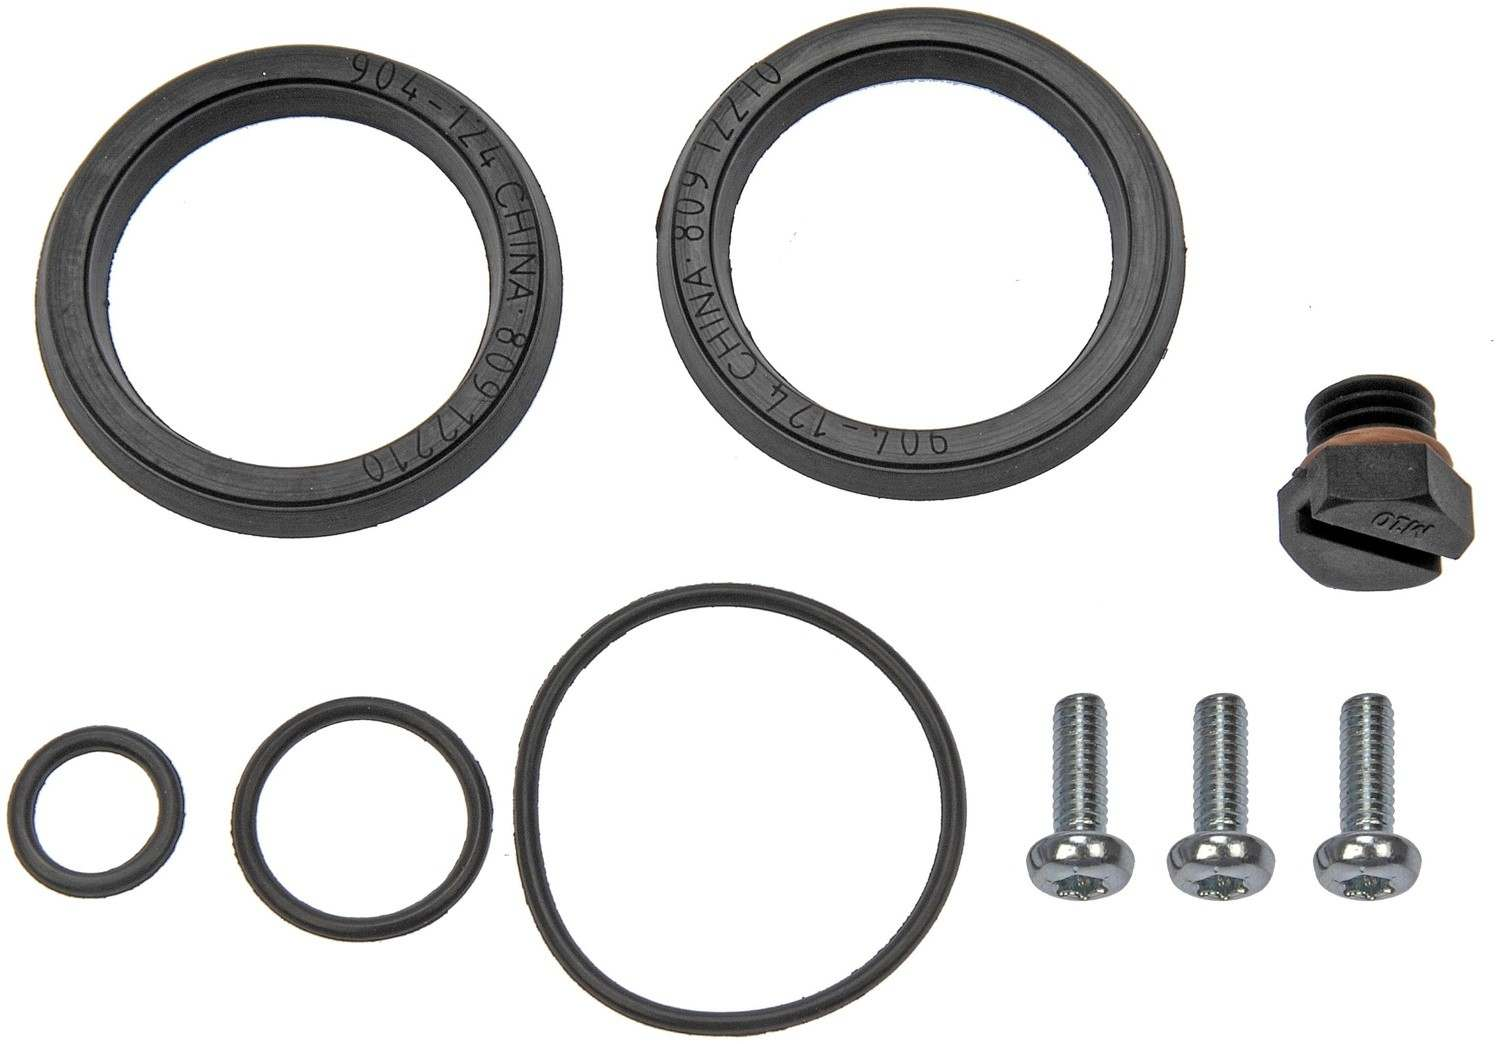 Fuel Filter Primer Housing Seal Kit Gm 6 6l Dorman 904 124